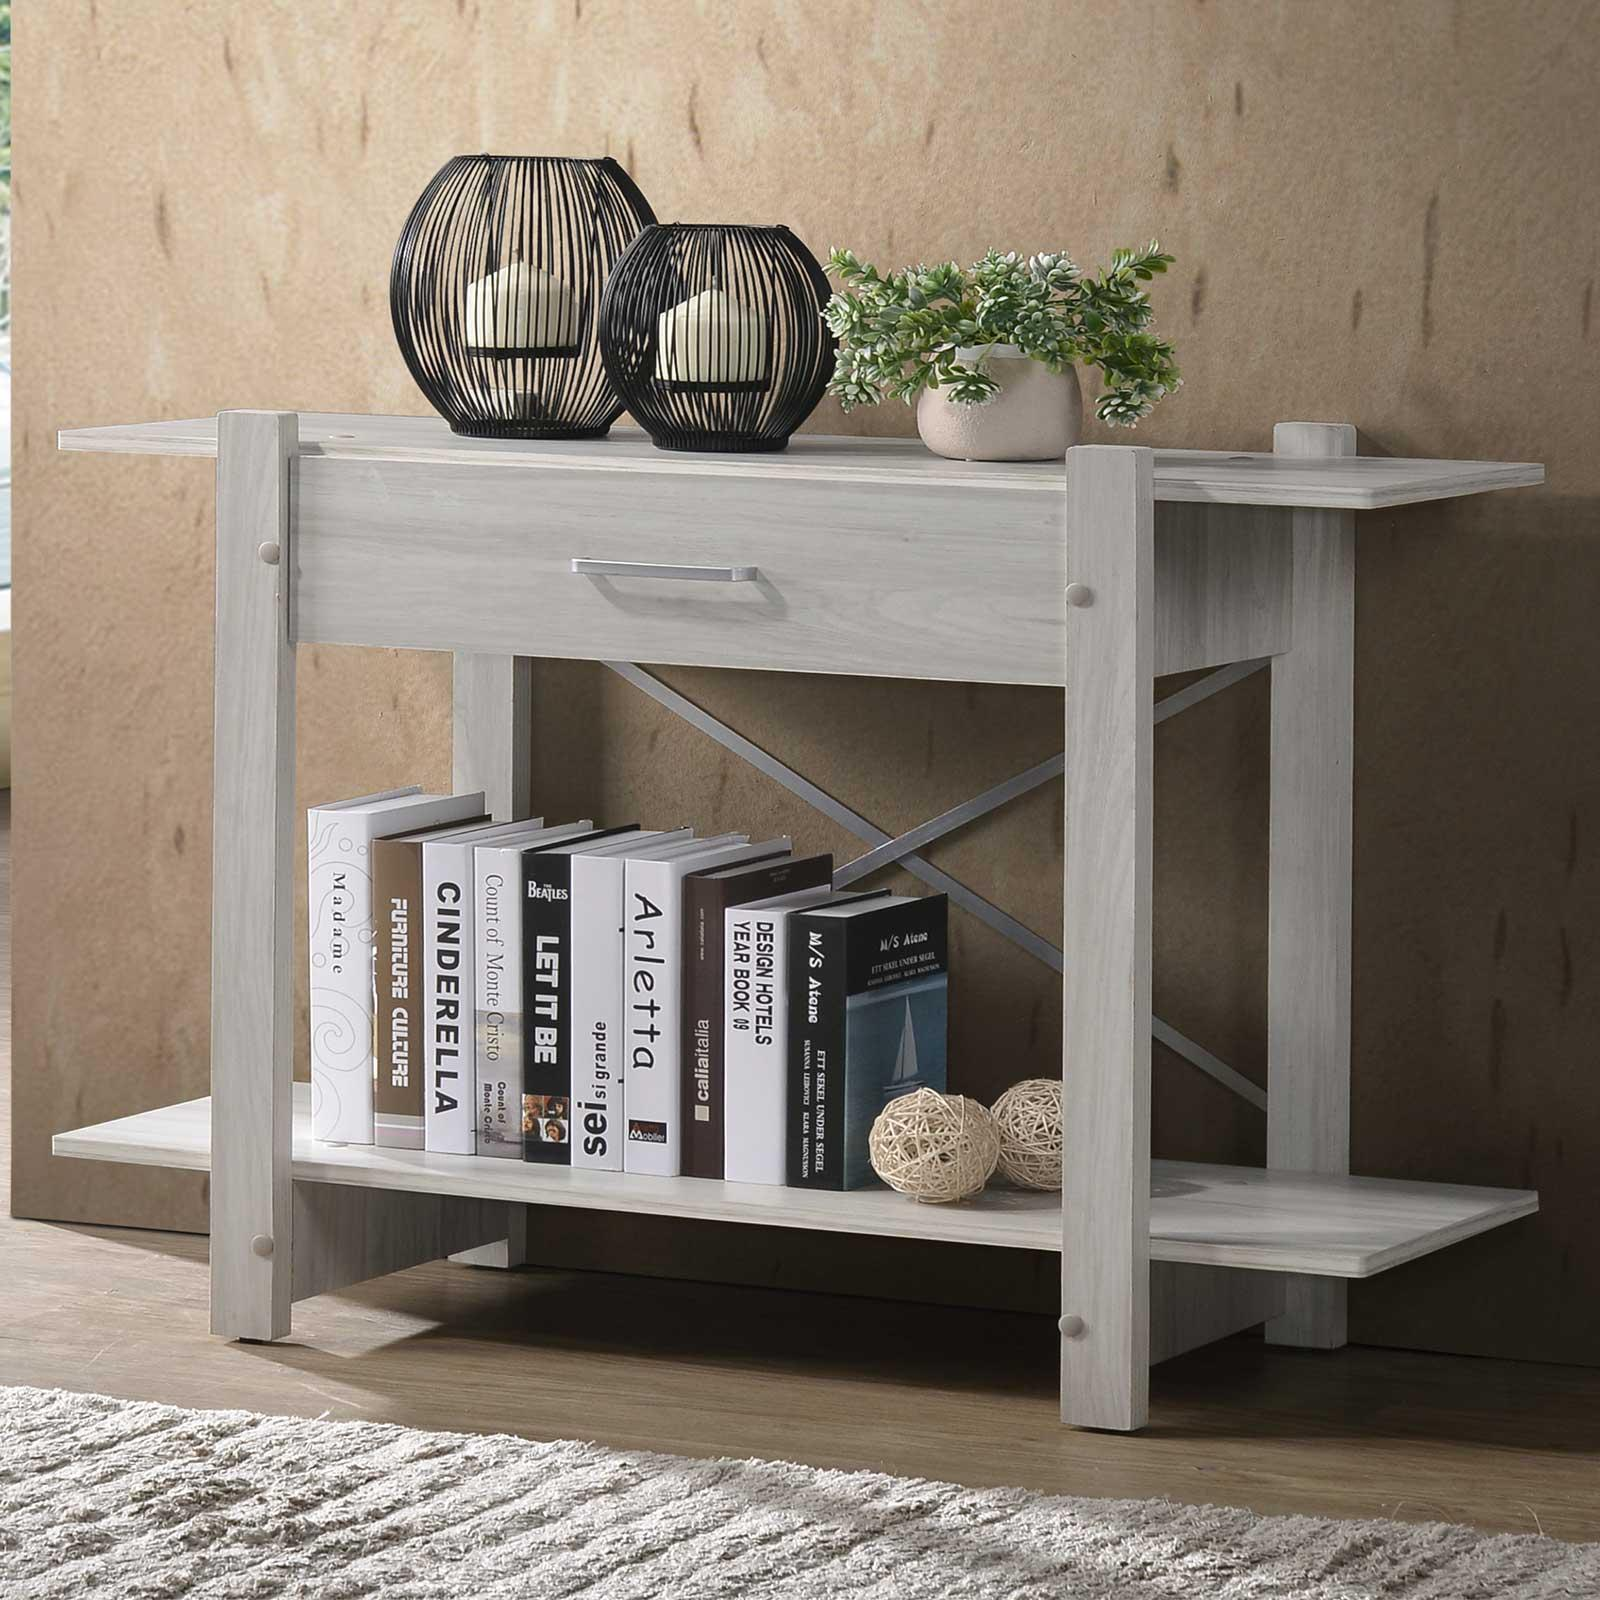 Console Table (Free Installation + Delivery) Hallway Side Table in Light Oak E-LIVING Furniture